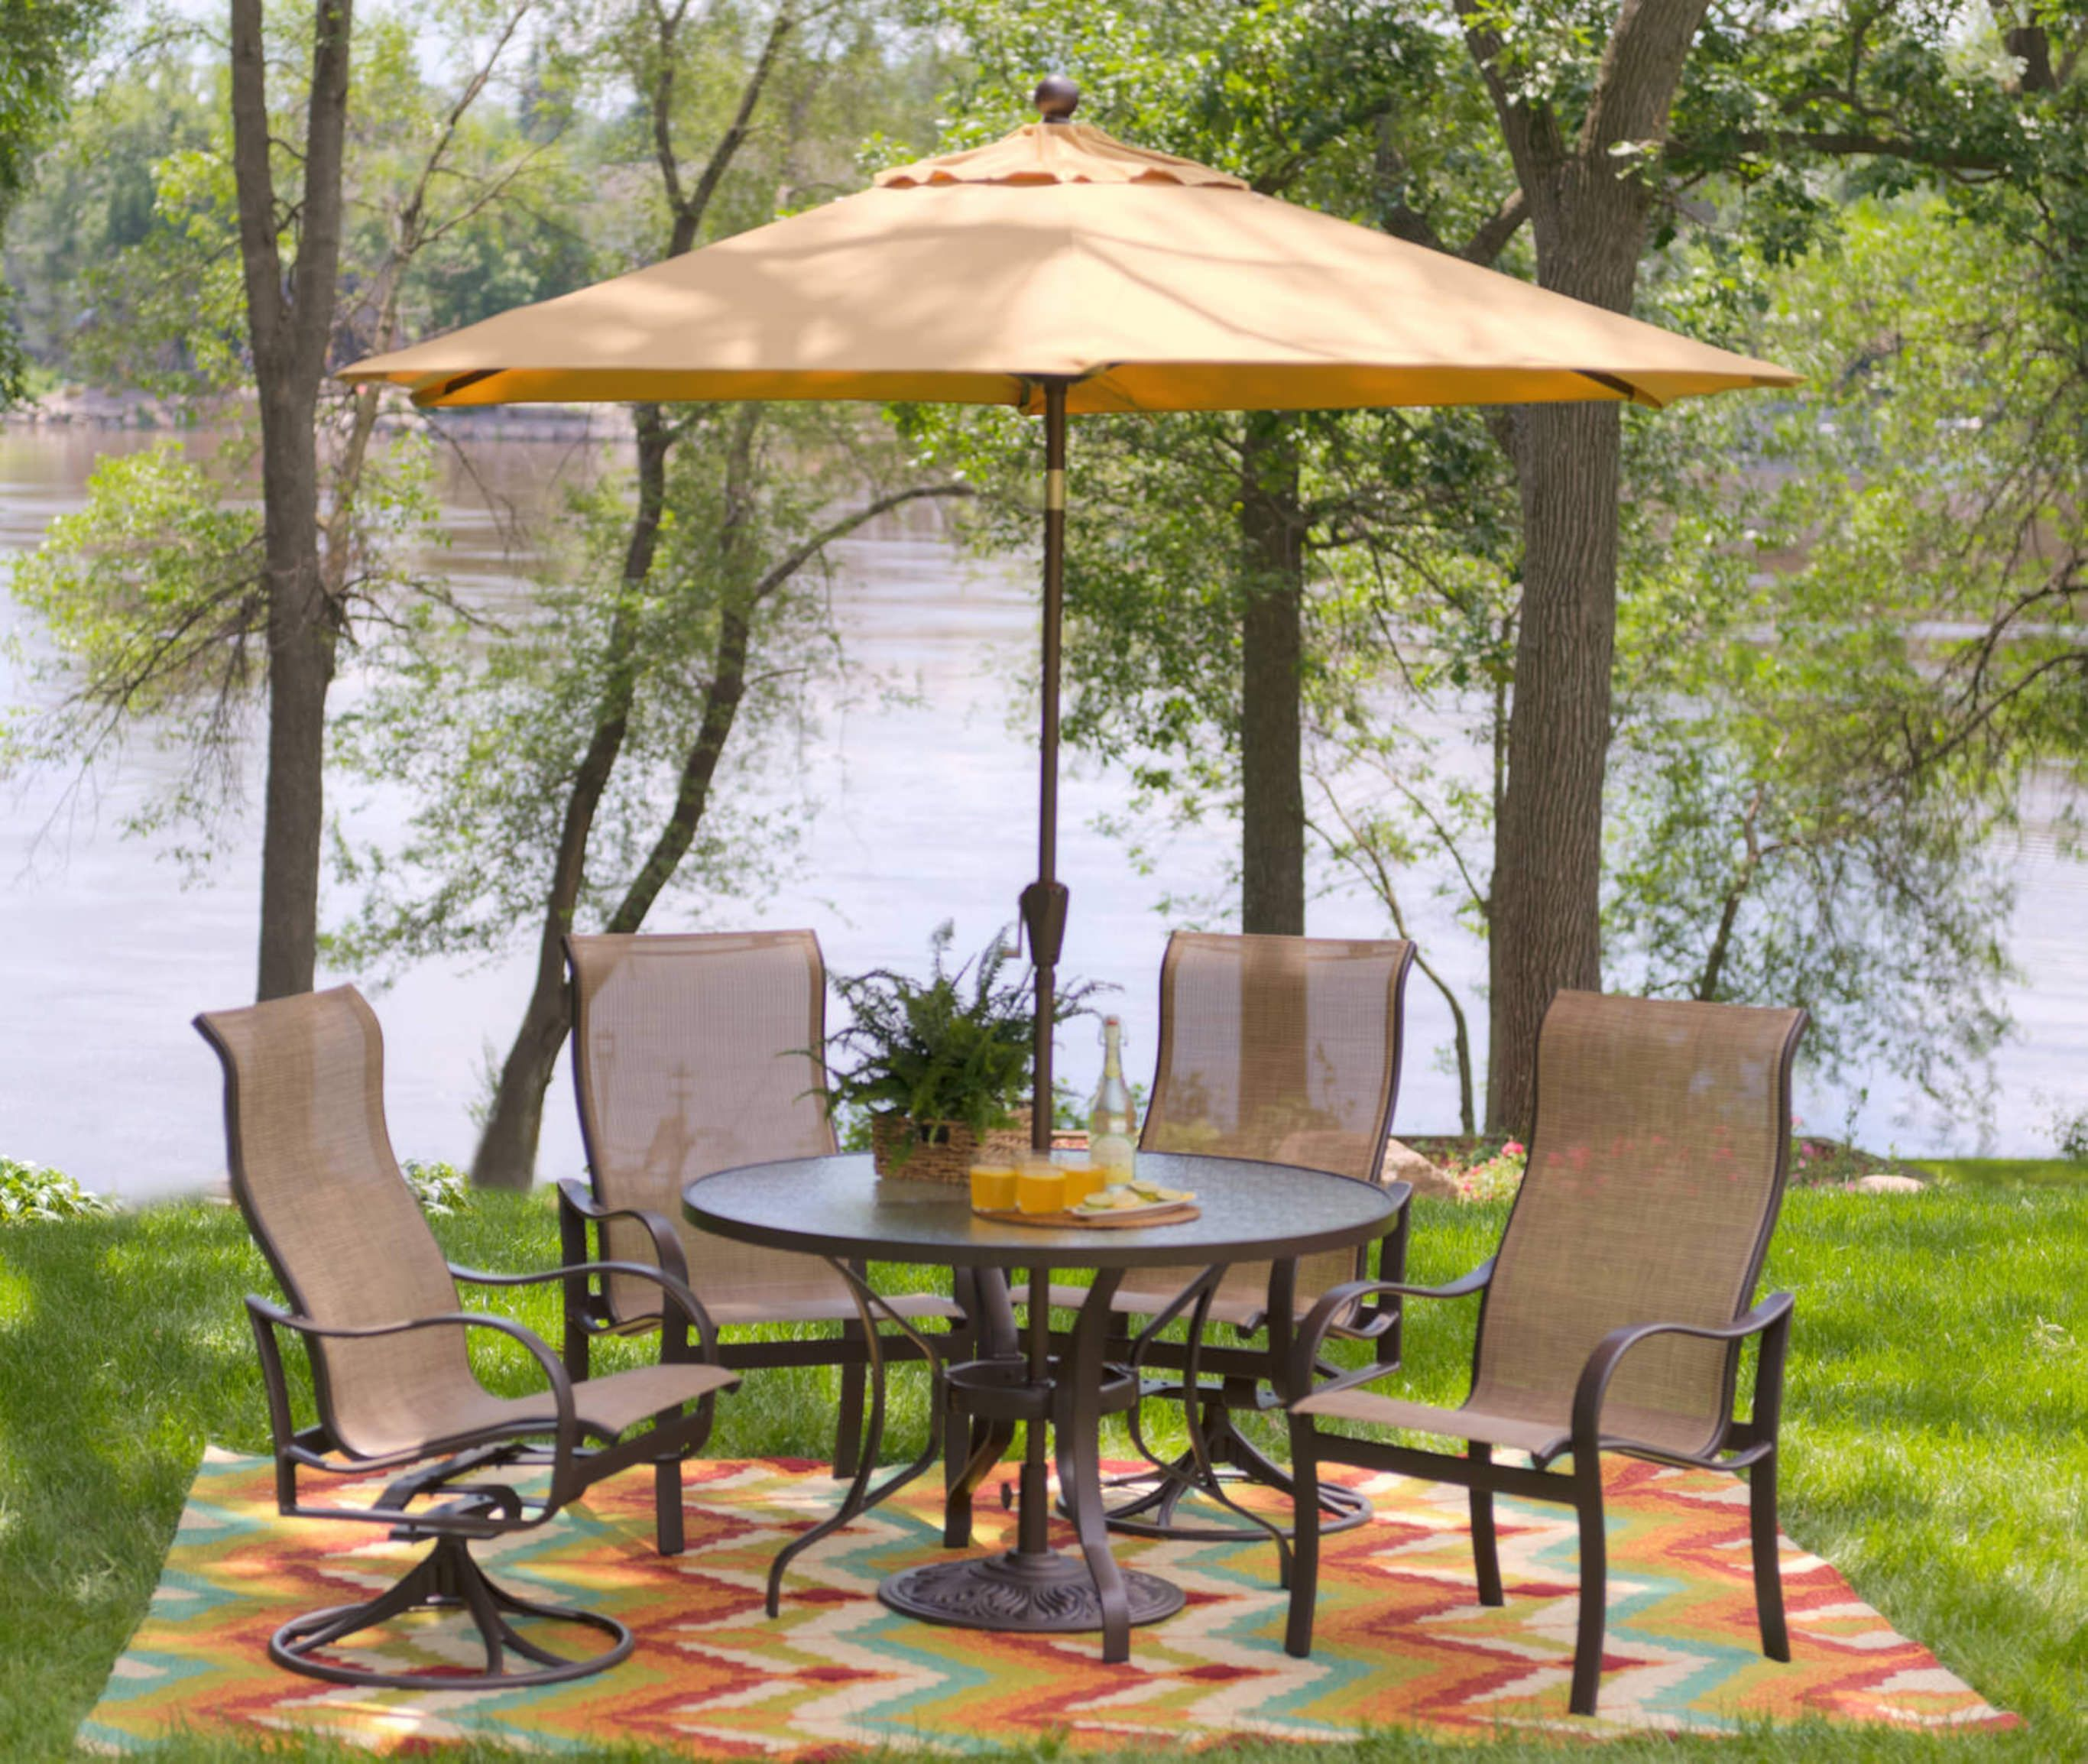 Superbe American Made Patio Furniture   Design Blog By HOM Furniture